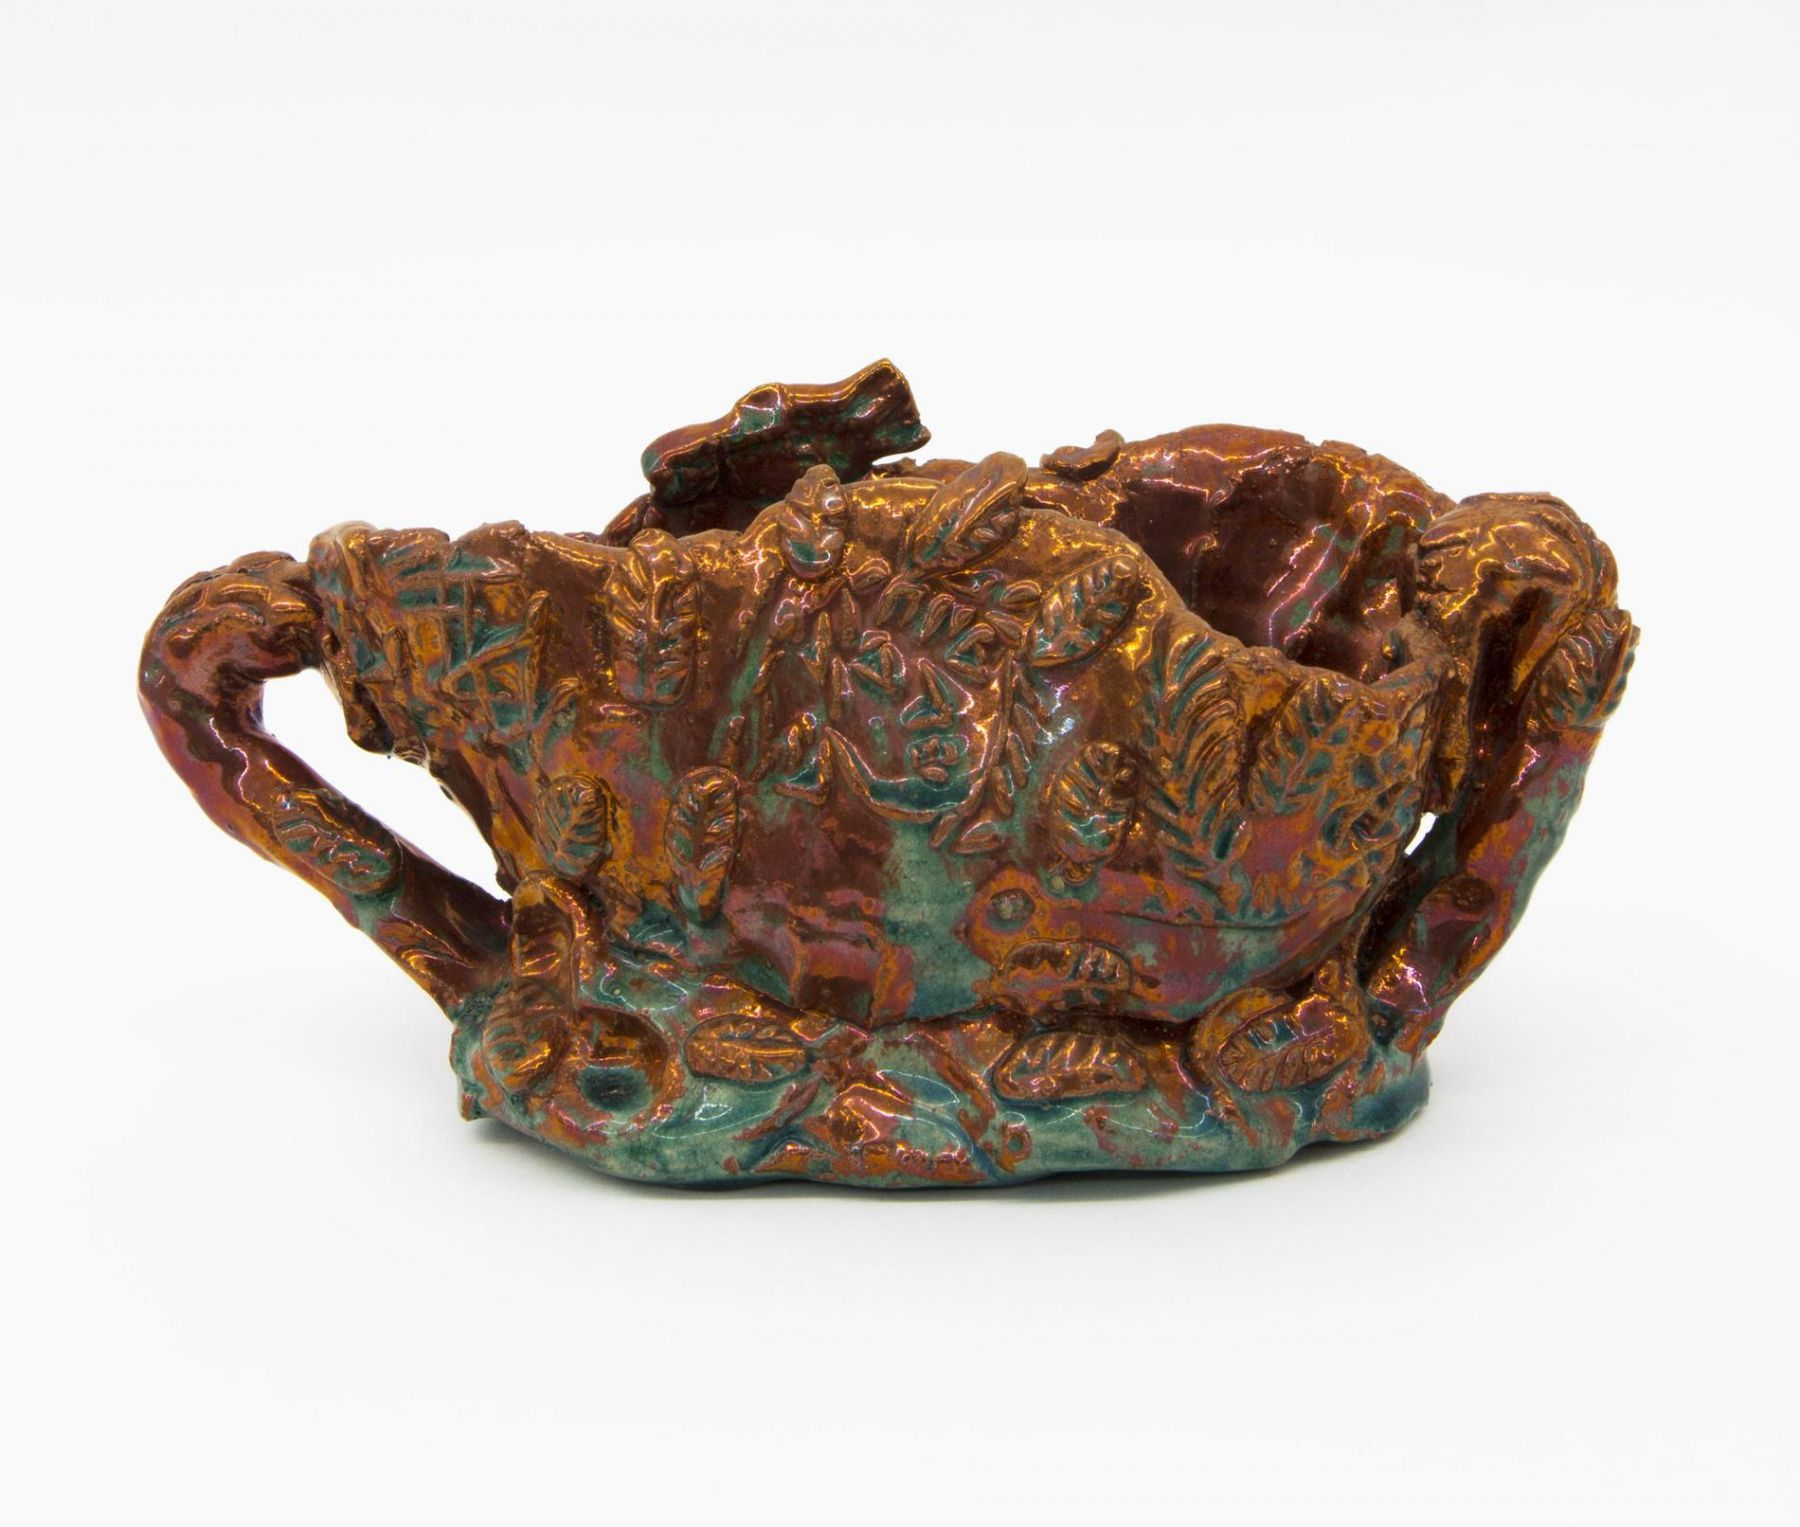 , Red Luster Floating World, 1986, Luster glazed earthenware, 4 3/4 x 9 7/8 x 4 1/4 in.